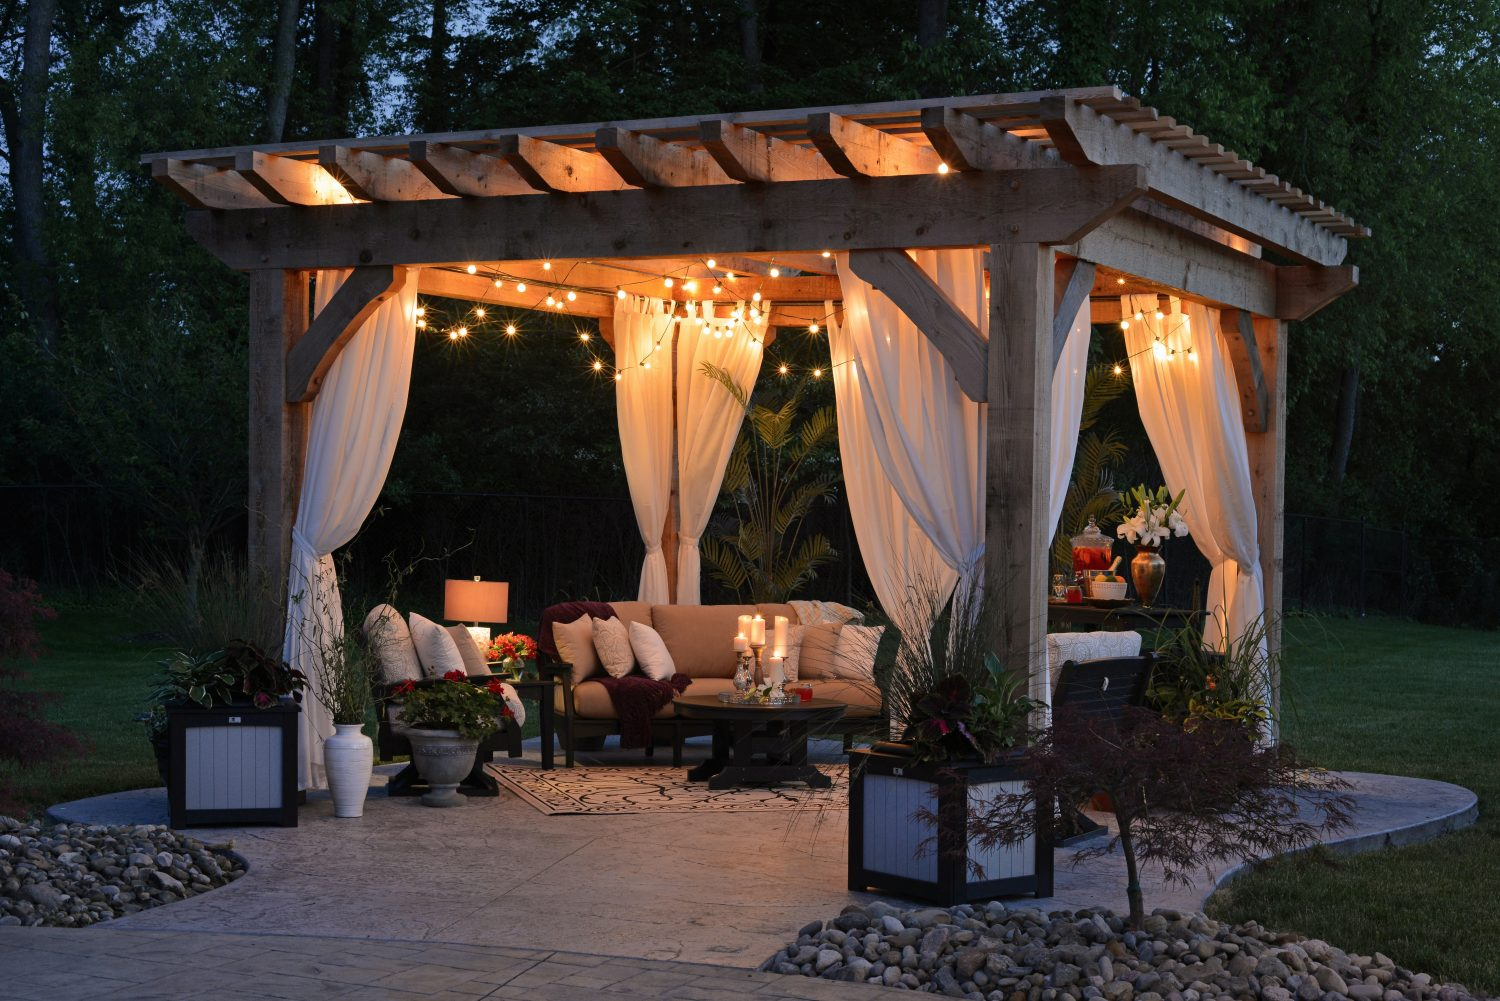 picture of backyard gazebo with lights and candles